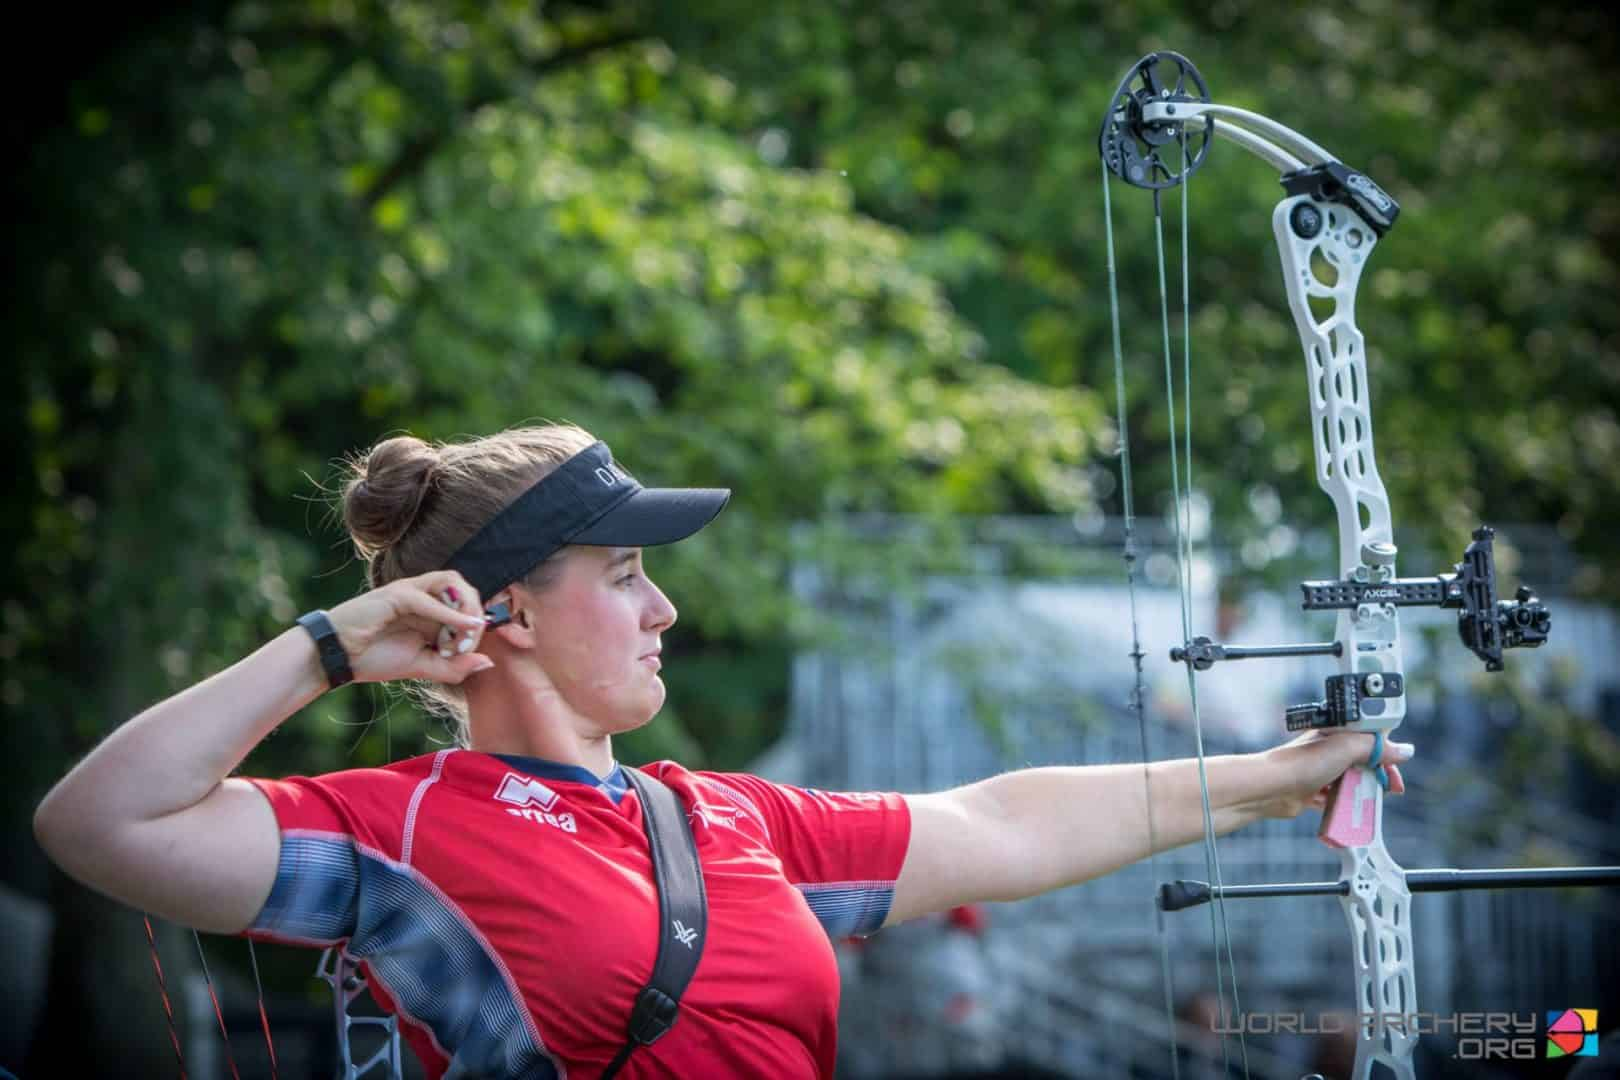 Paralympic squad archer Phoebe Pine